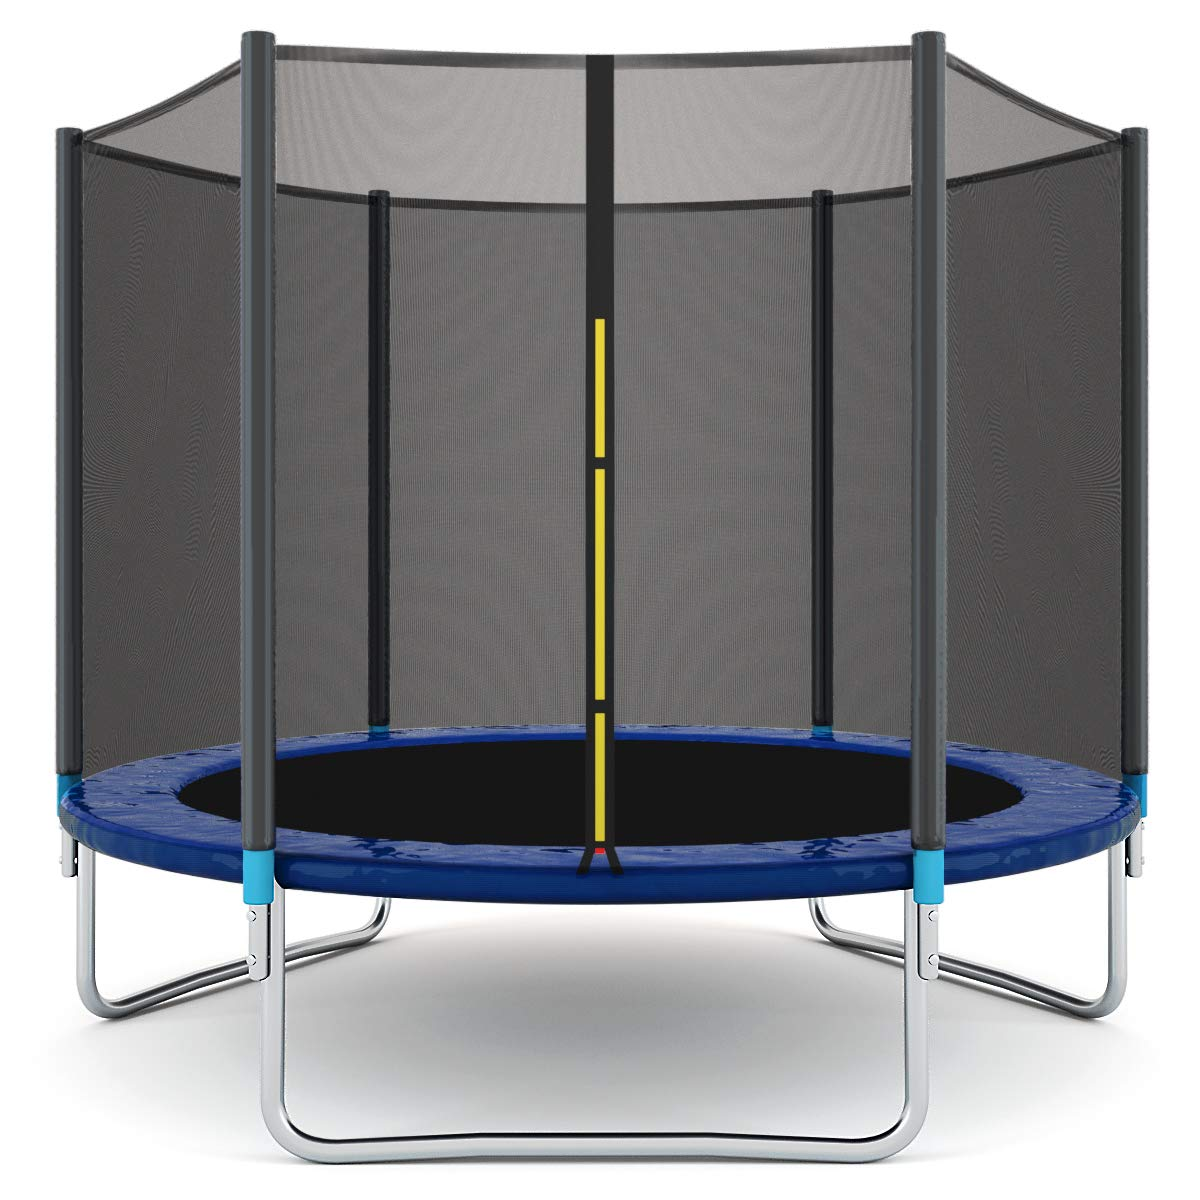 Giantex Trampoline Combo Bounce Jump Safety Enclosure Net W/Spring Pad (8 FT) by Giantex